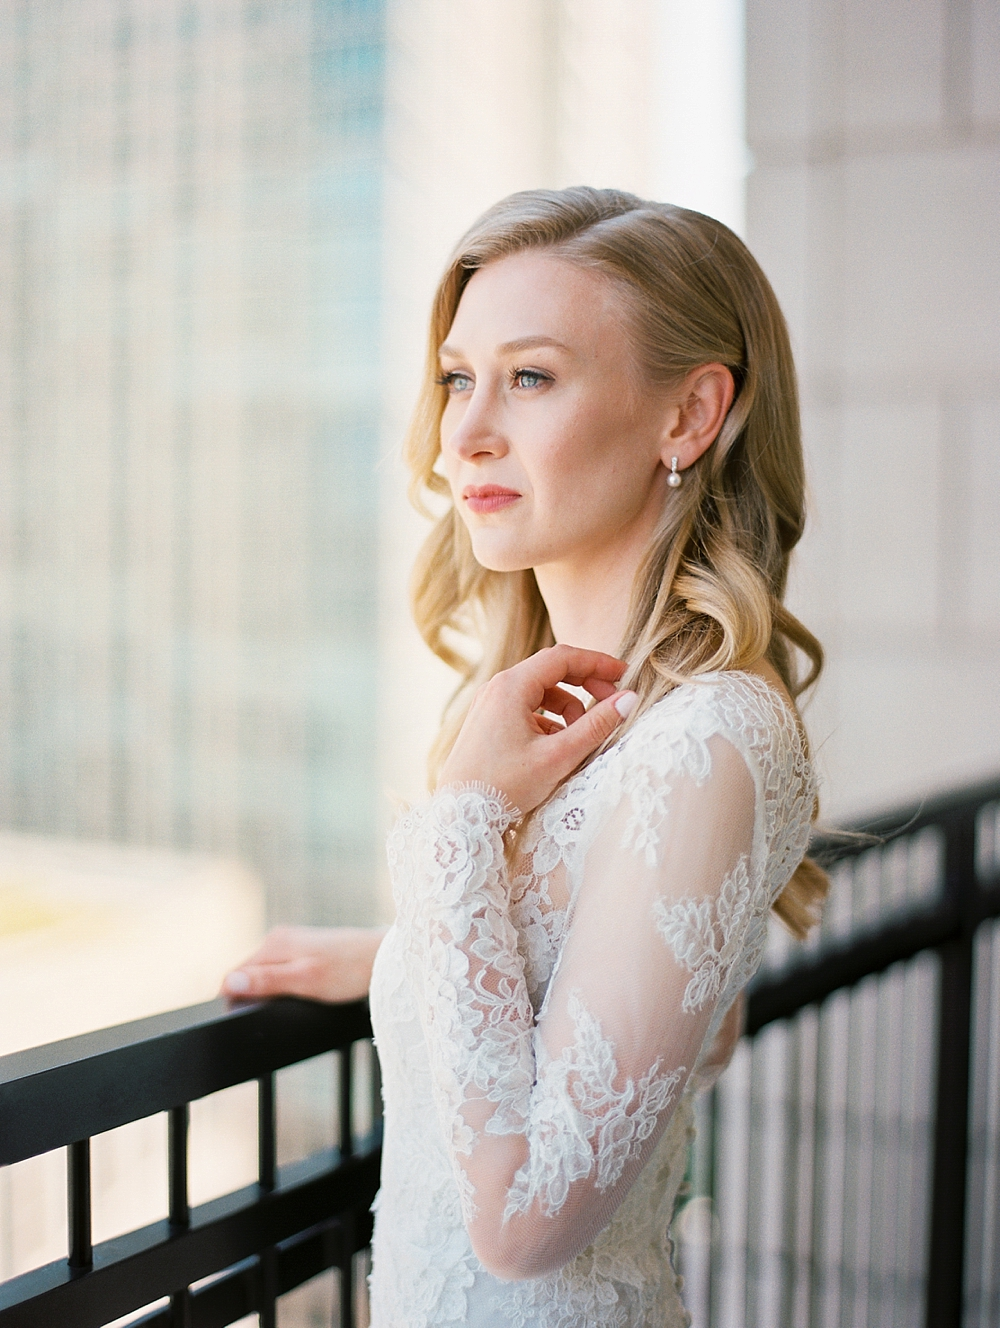 kristin-la-voie-photography-chicago-wedding-photographer-88